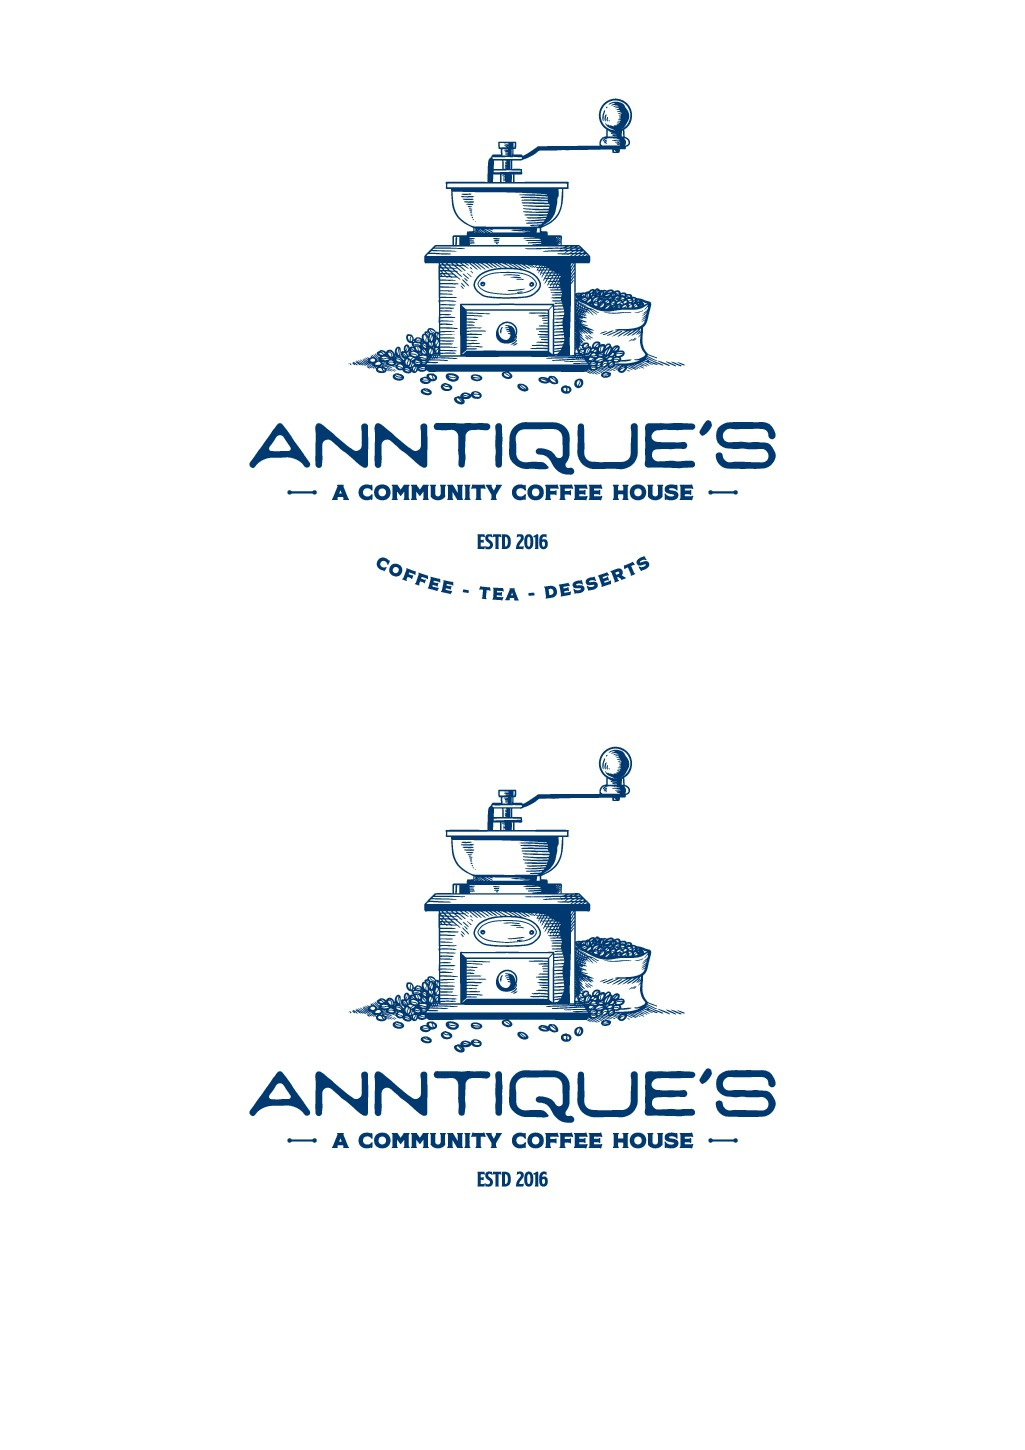 Help me present Anntique's coffee shop logo to the world!